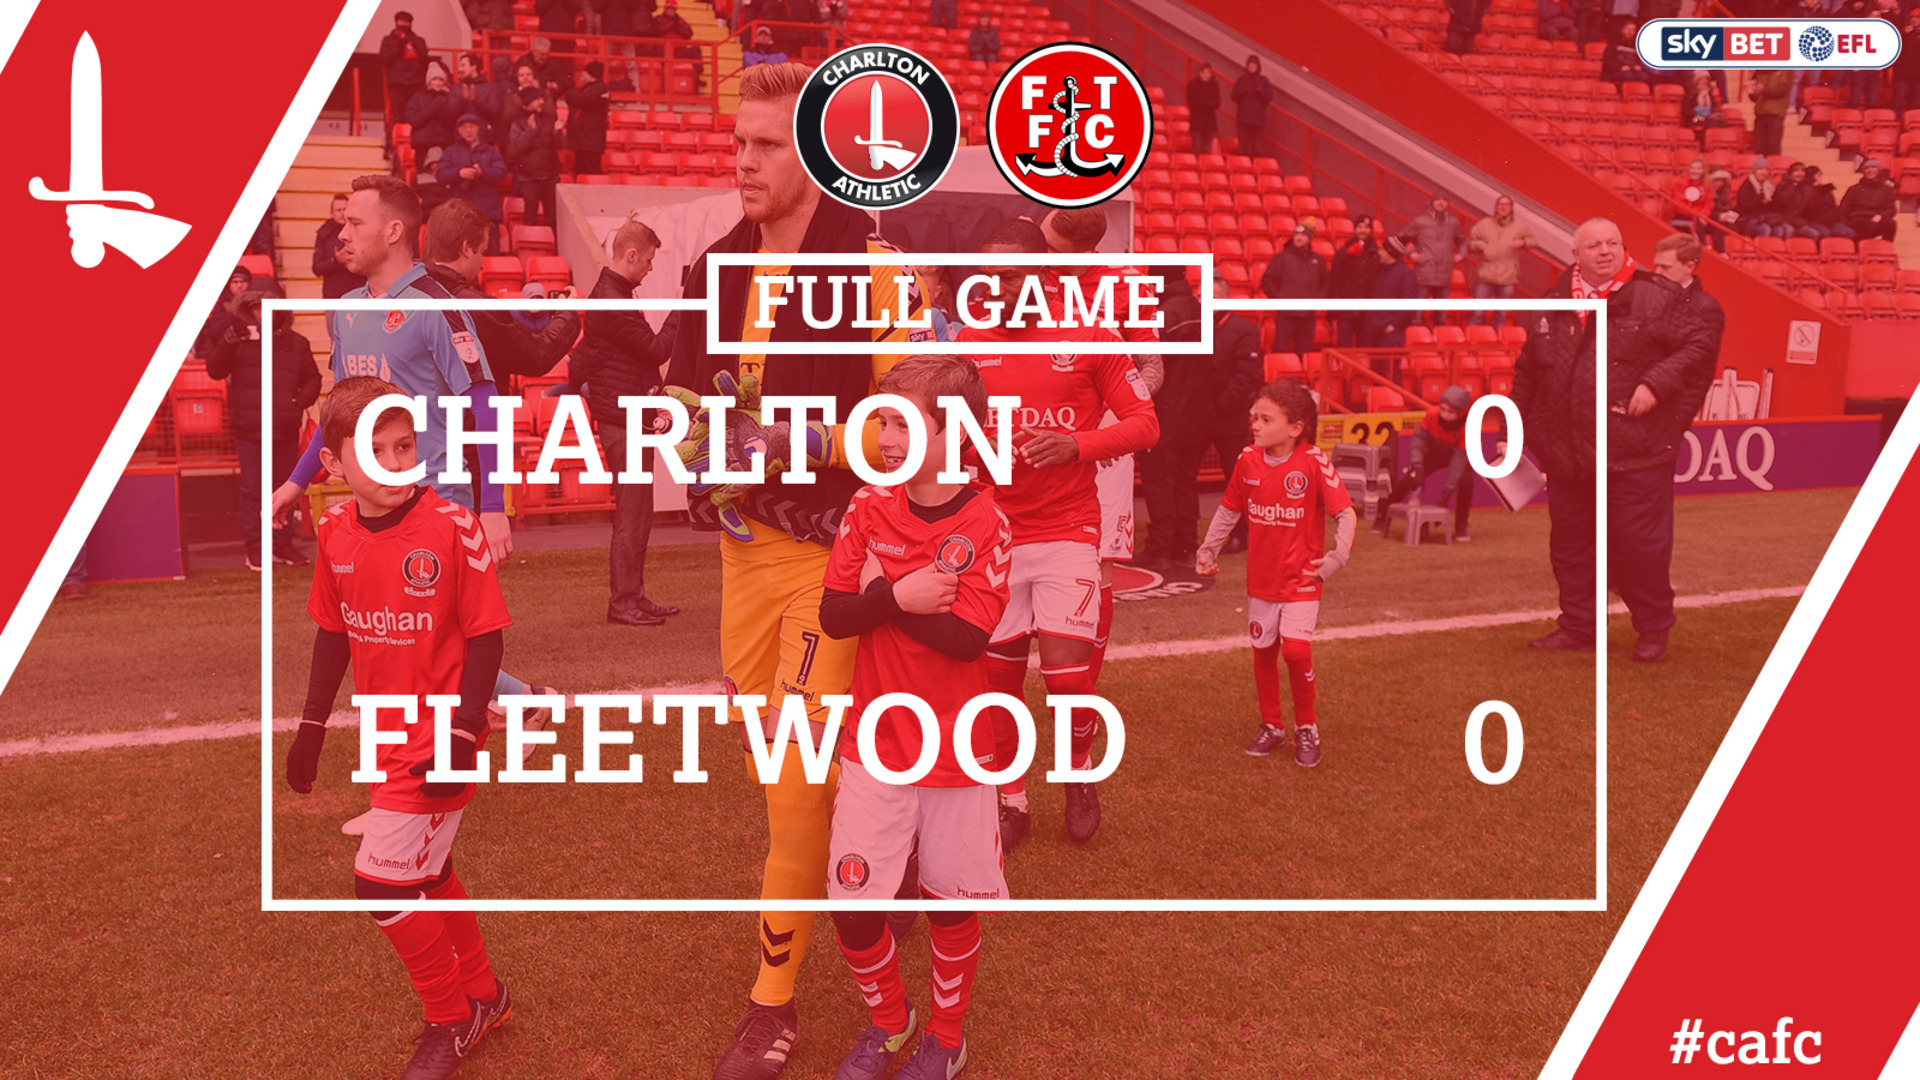 FULL GAME | Charlton 0 Fleetwood 0 (March 2018)